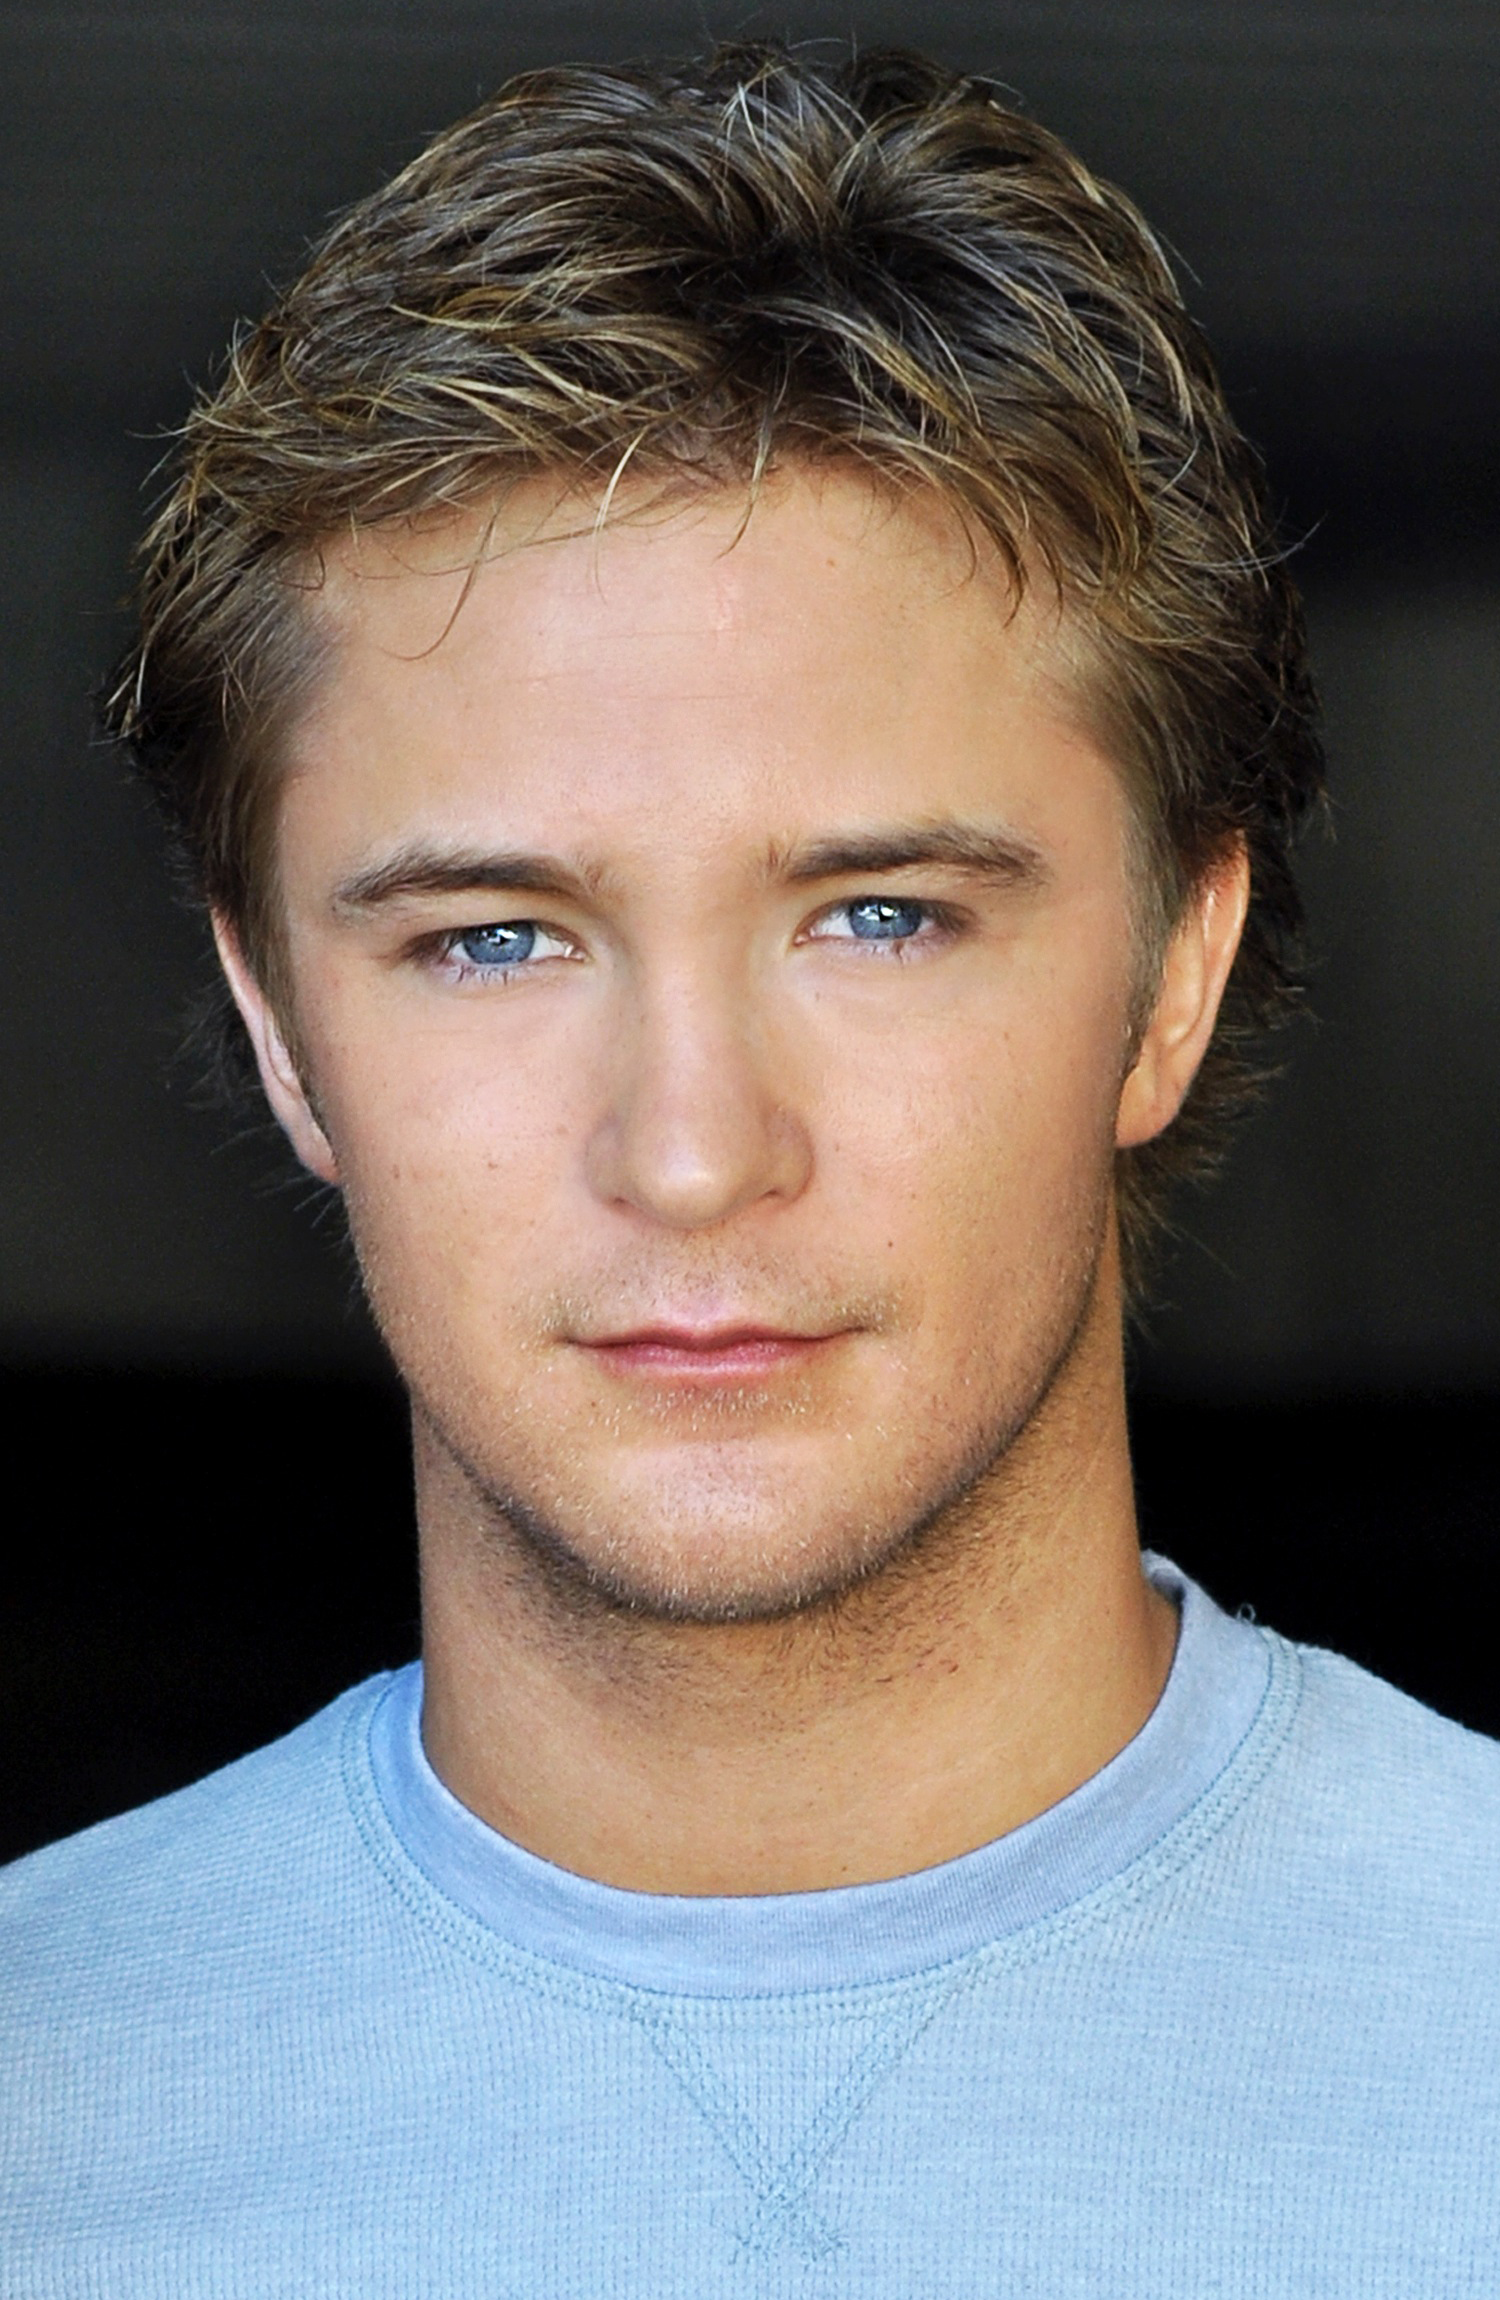 2004 - Michael Welch